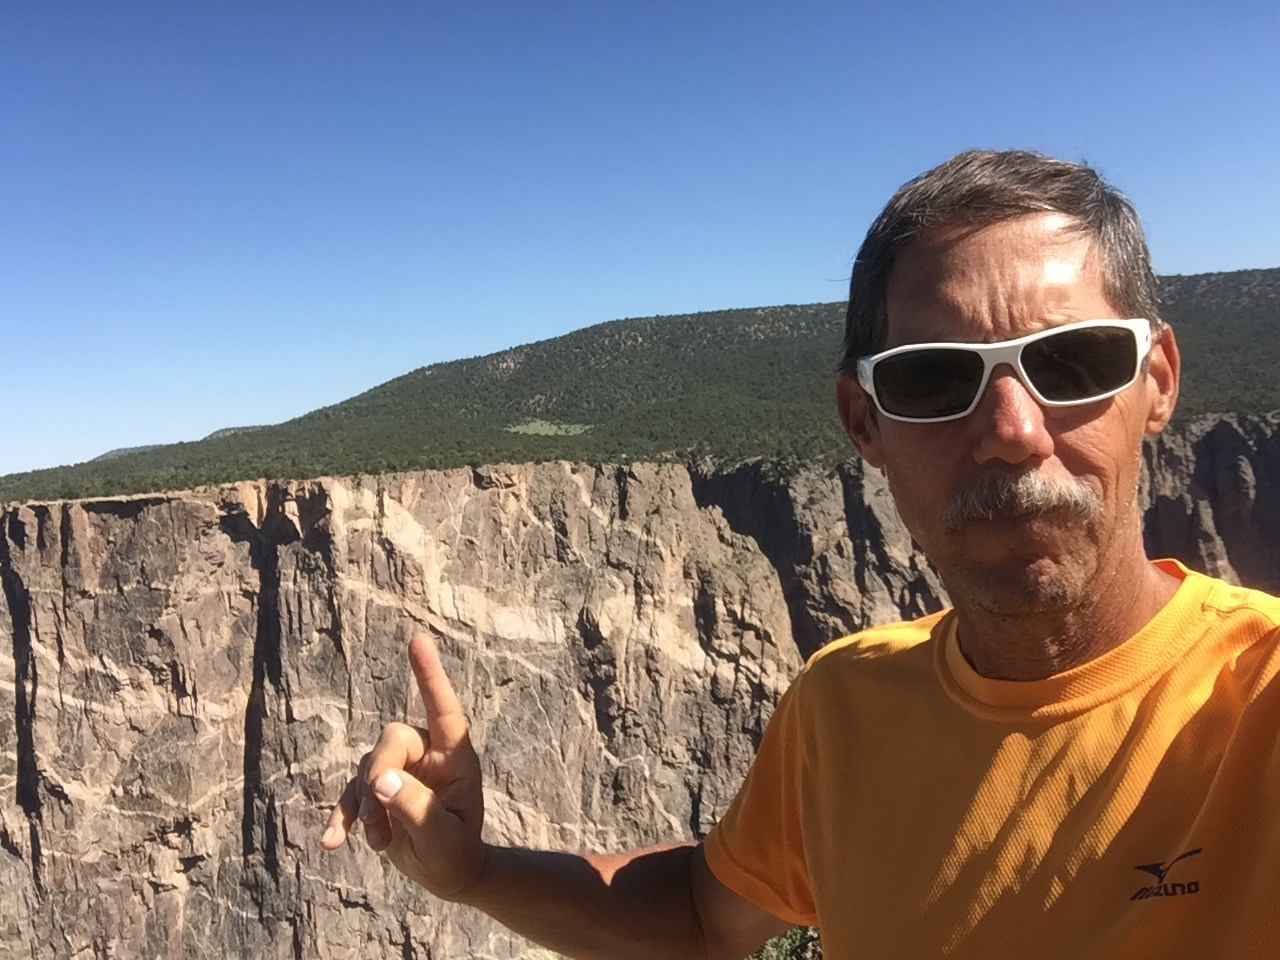 Selfie at Black Canyon of the Gunnison